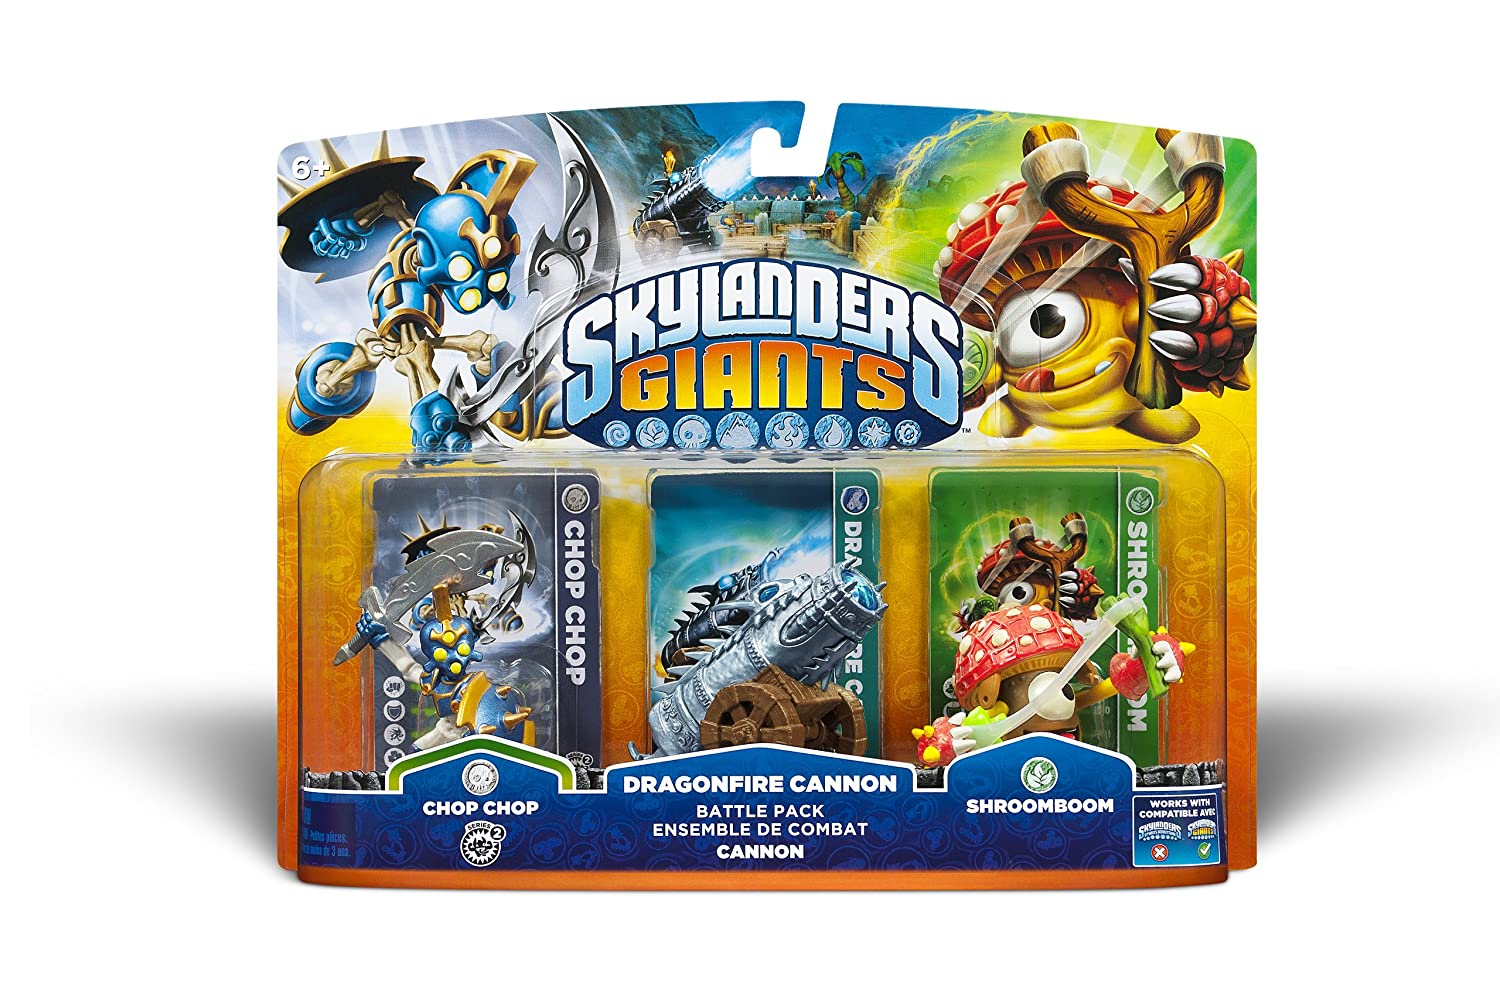 Skylanders Giants Battlepack #1 – Chop Chop – Dragonfire Cannon – Shroomboom $9.99